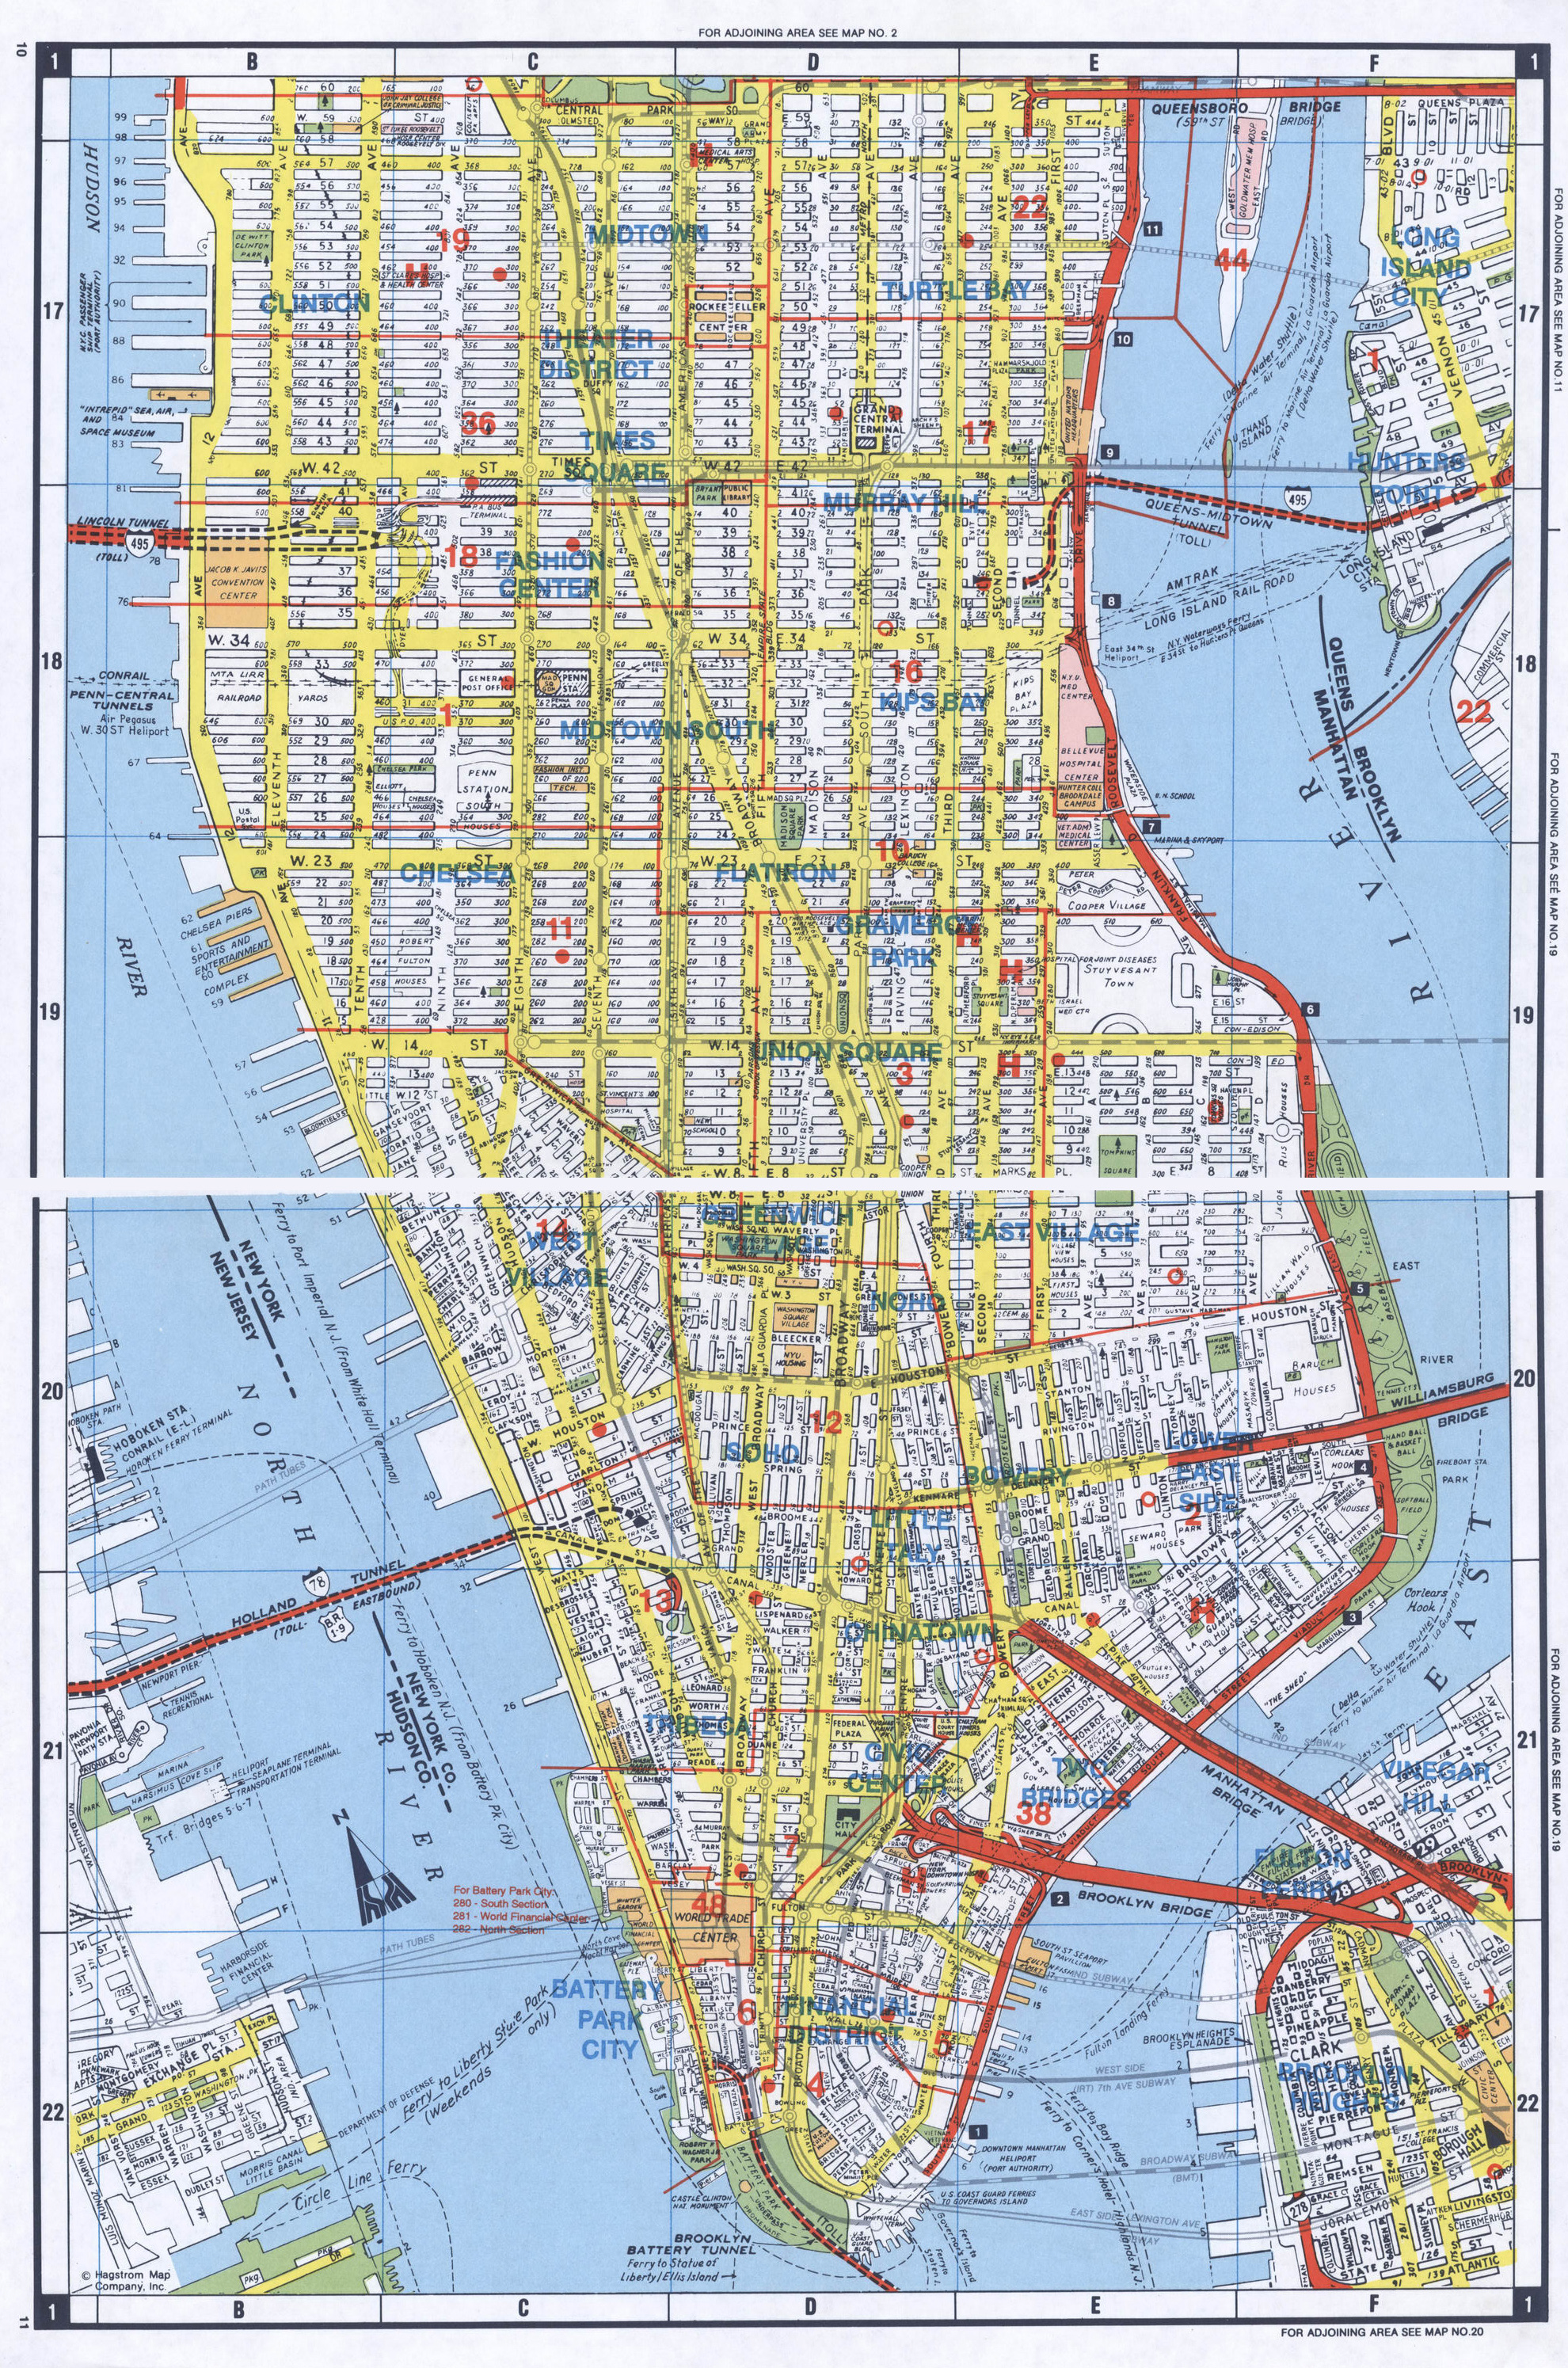 Detailed Map Of New York City.Large Detailed Road Map Of South Manhattan Nyc South Manhattan